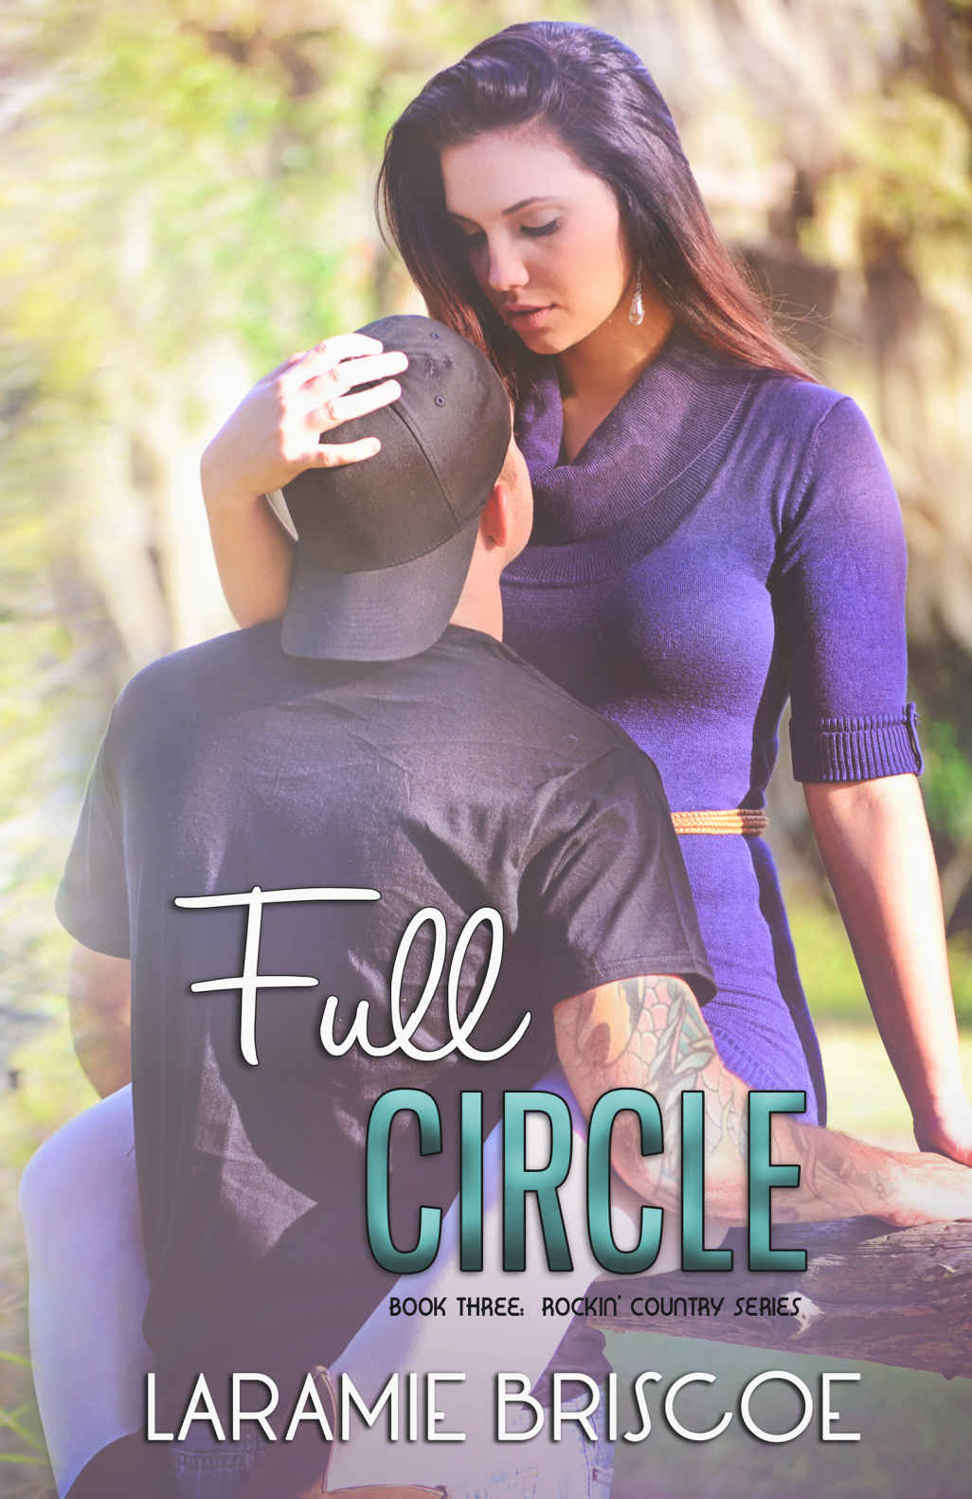 Full Circle (Rockin' Country #3) by Laramie Briscoe